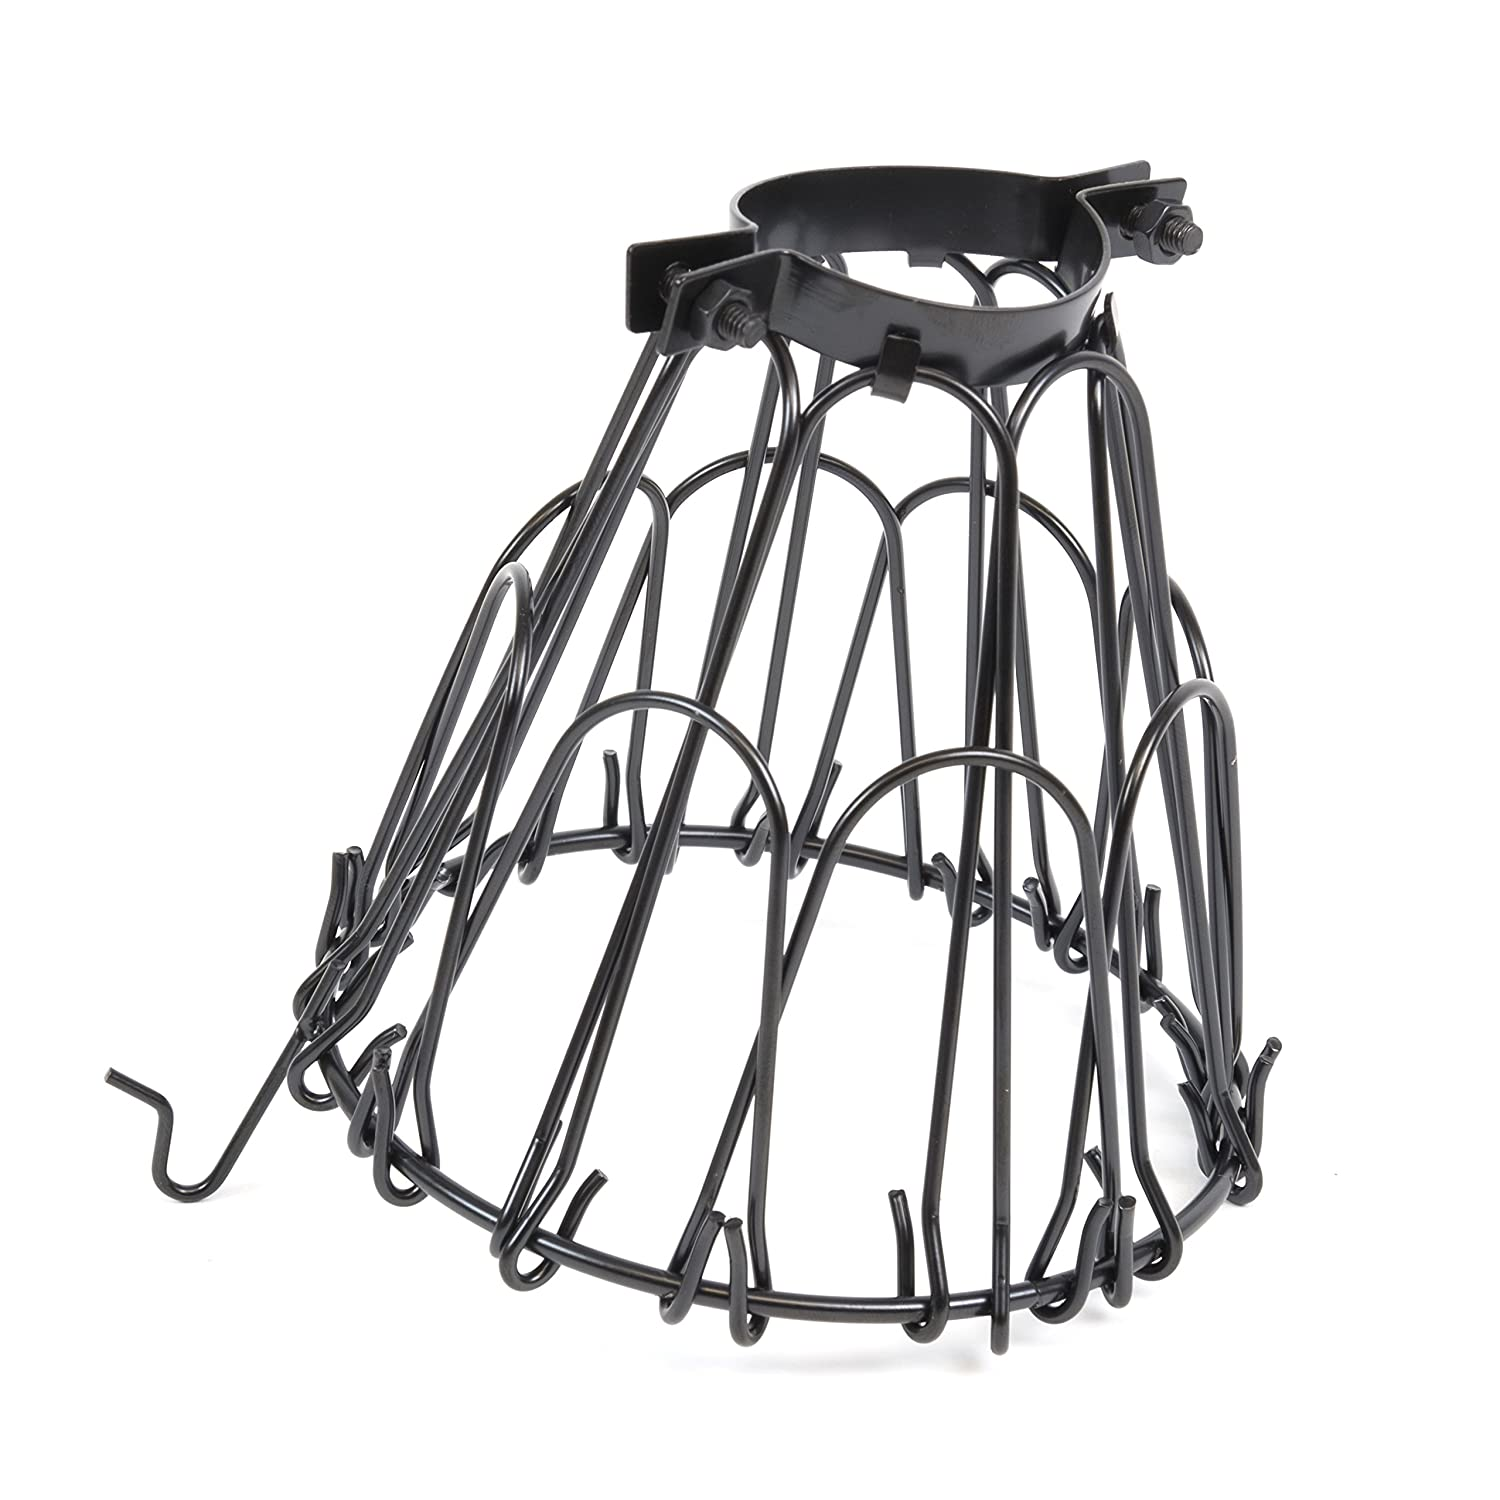 Rustic State Elegant Design Metal Wire Cage By Artifact For Tail Light Bulb Socket And Wiring Kit Moreover Diy Lighting Fixtures Wall Pendant Lamps With Adjustable Openings In Black